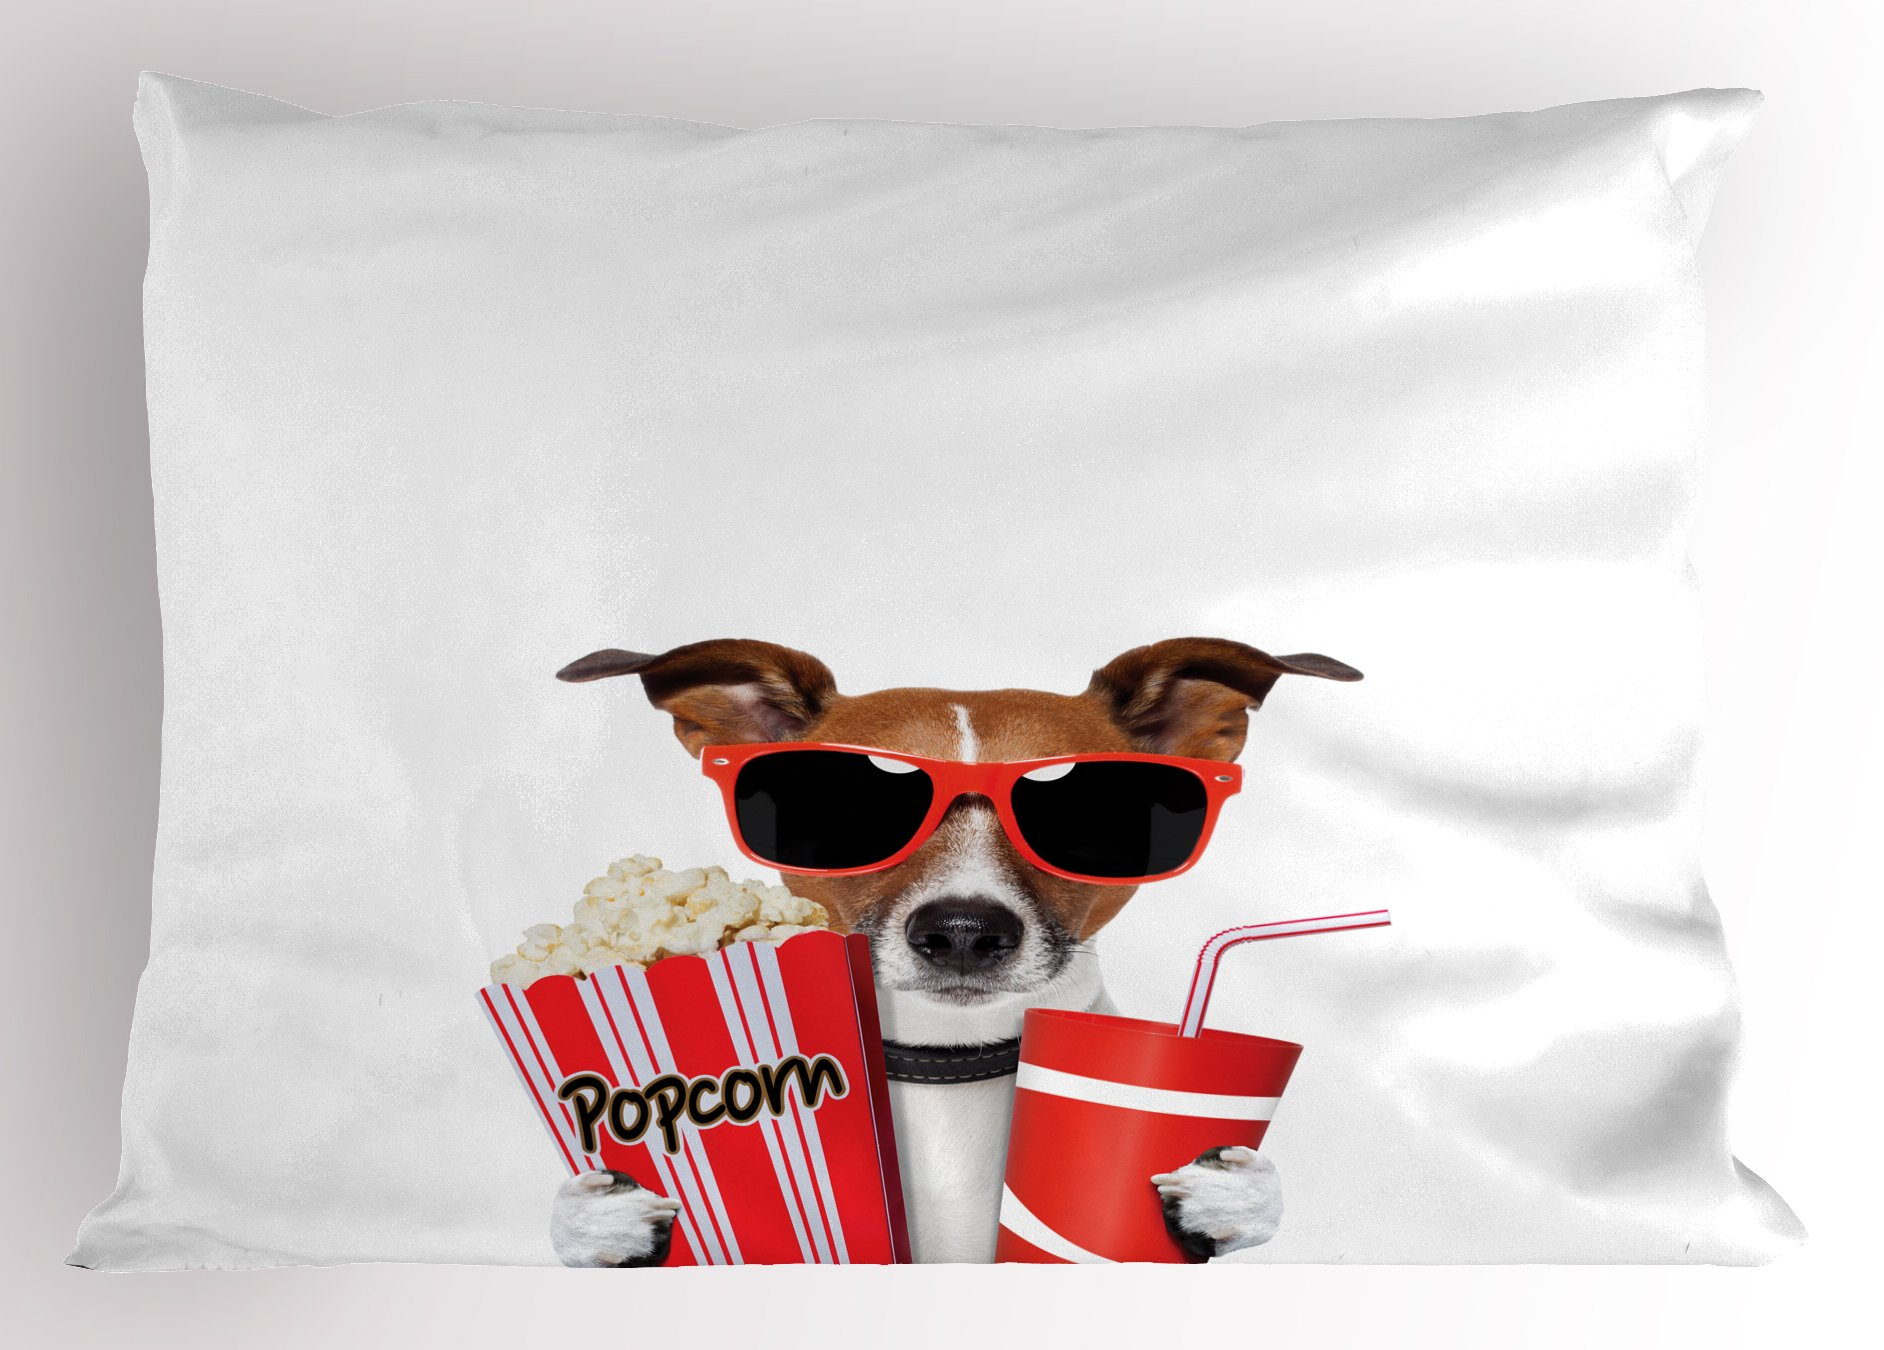 Ambesonne Movie Theater Pillow Sham, Funny Dog Wearing Sunglasses Watching a Movie with Popcorn and Soda Print, Decorative Standard Size Printed Pillowcase, 26 X 20 inches, Multicolor